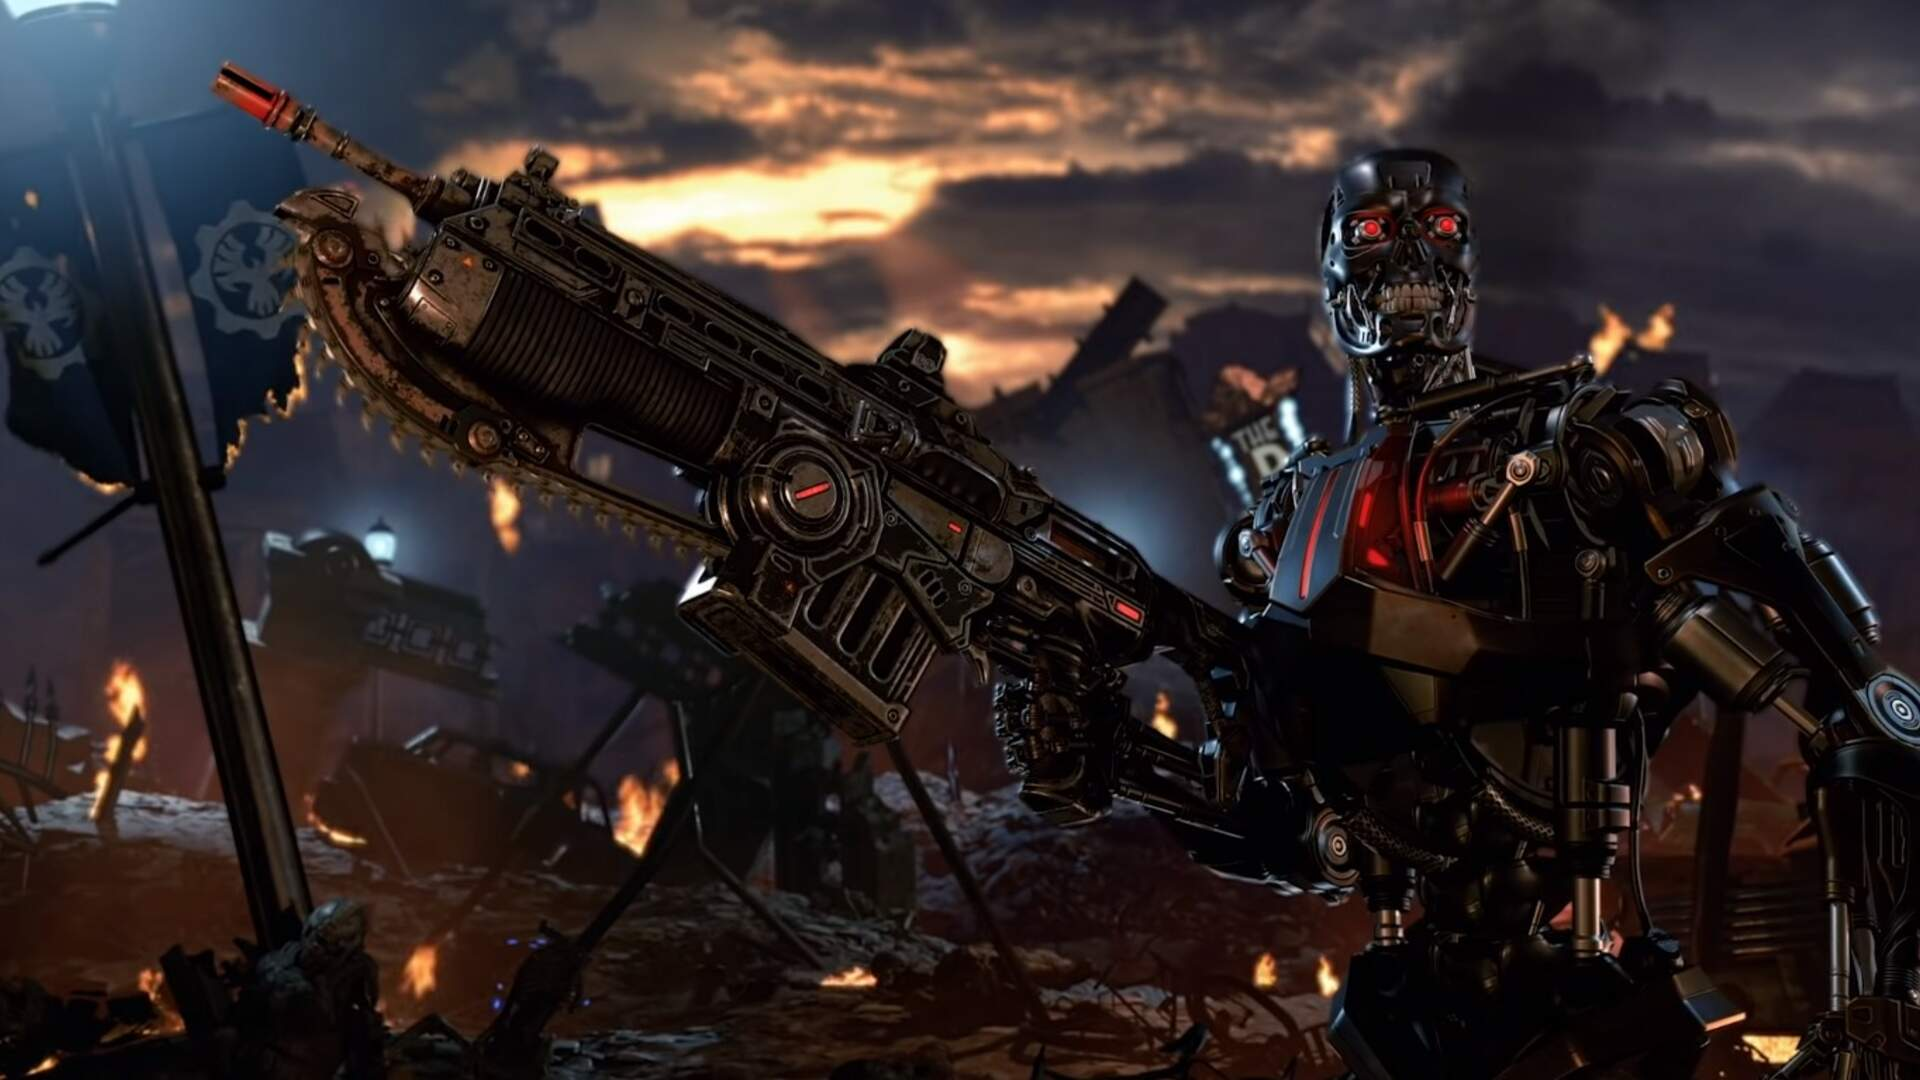 Gears 5 Terminator Character Pack - Sarah Connor, T-800, Release Date